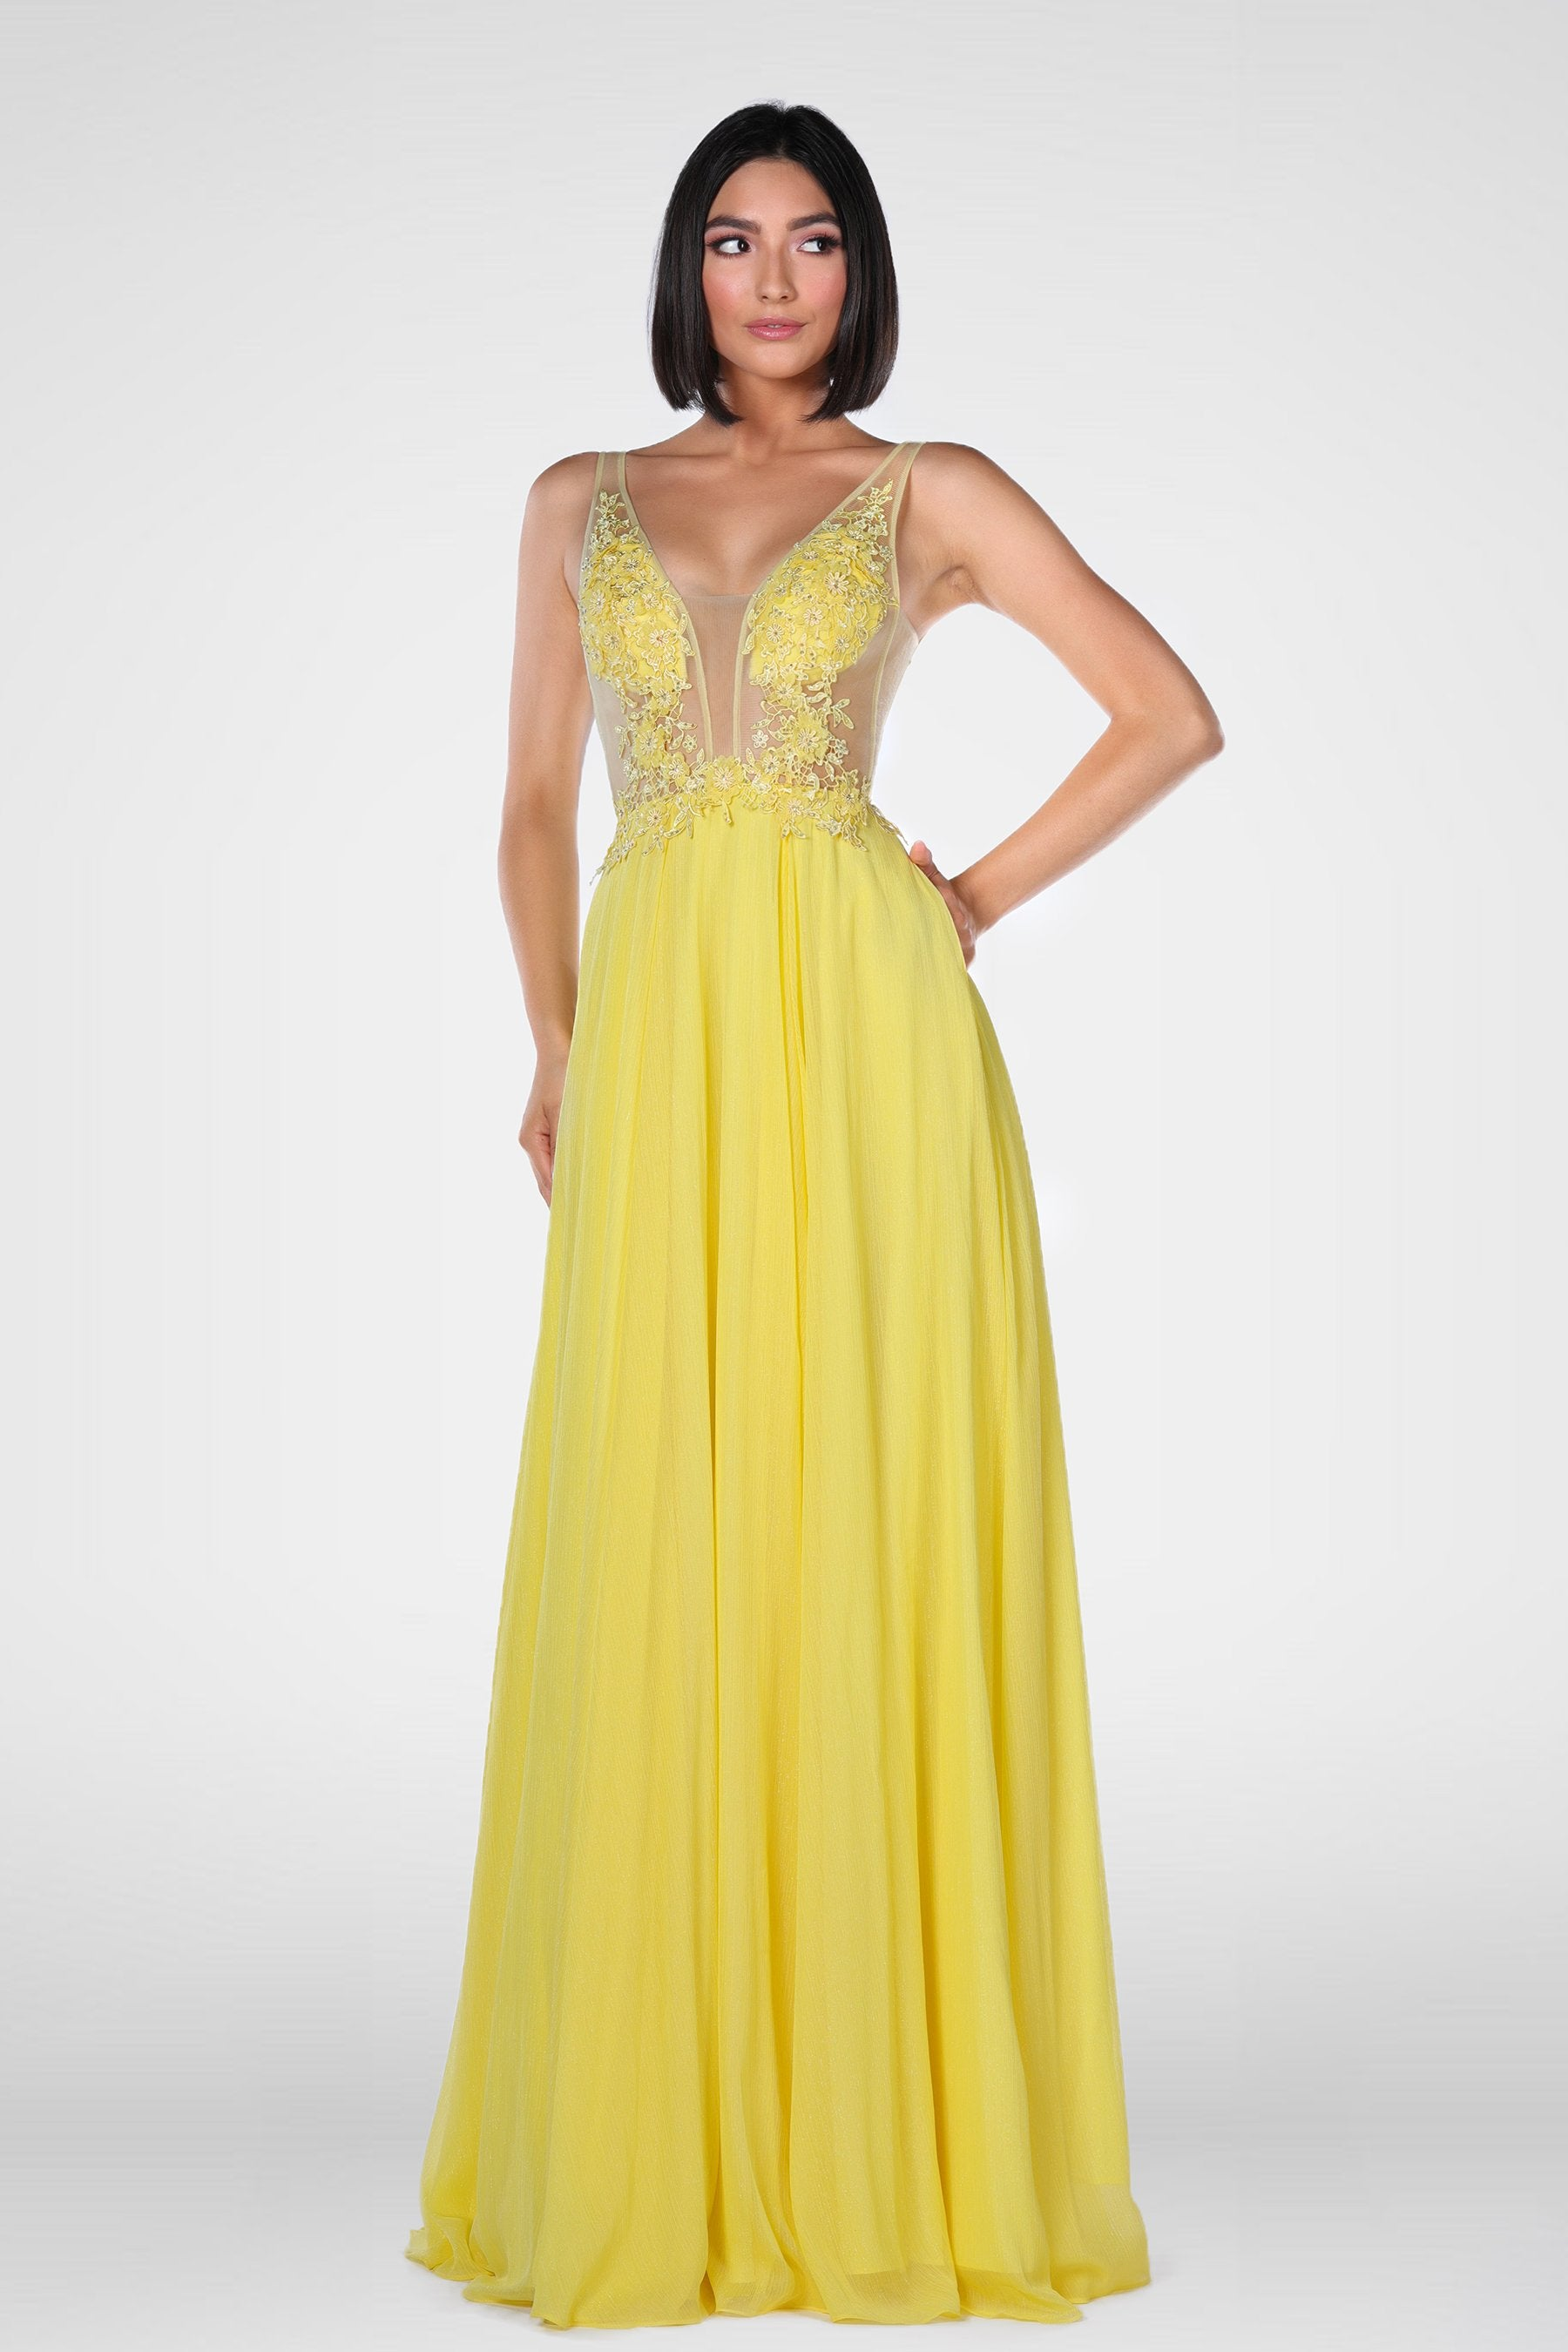 Vienna prom 7908 yellow prom dress